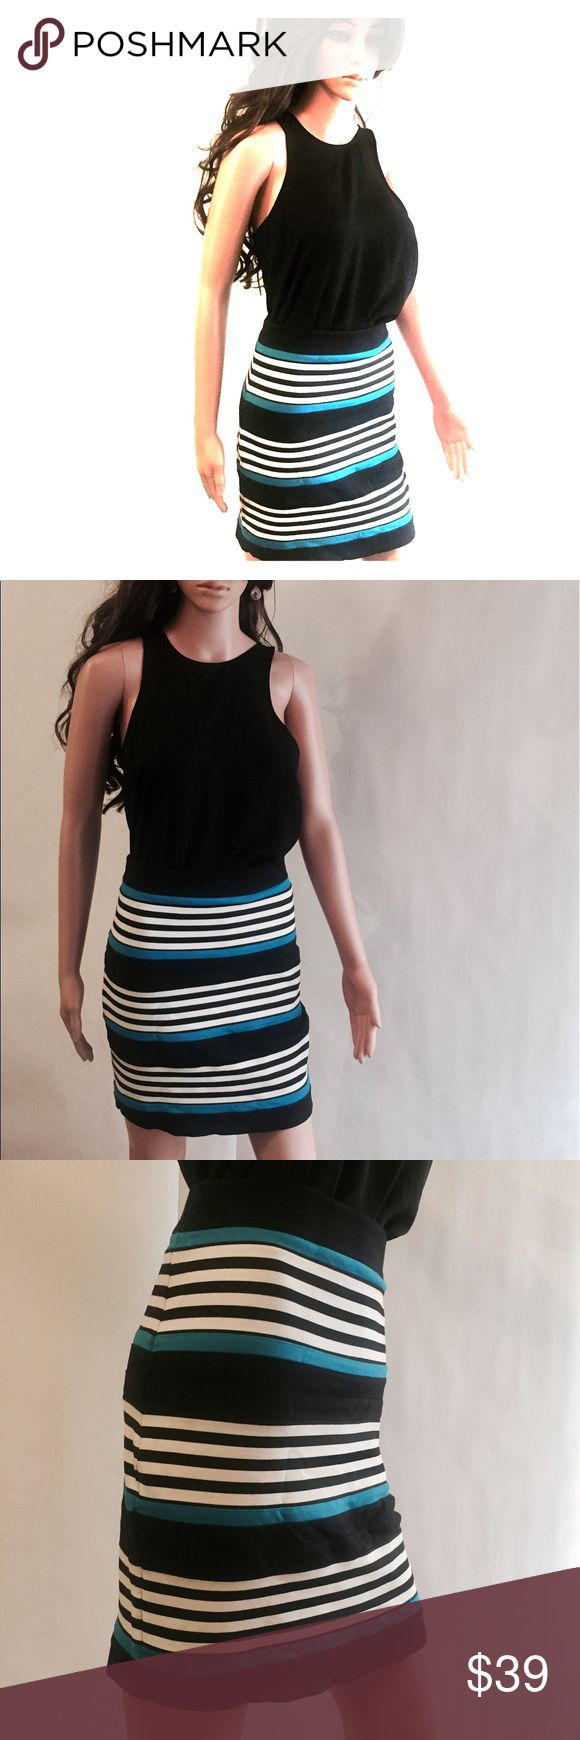 Express Professional Striped Pencil Skirt Express Professional Striped Pencil Skirt. Tiny little stain as pictured.  🌟🌟🌟Enjoy 20% off with 2 or more items from my closet! Express Skirts Pencil